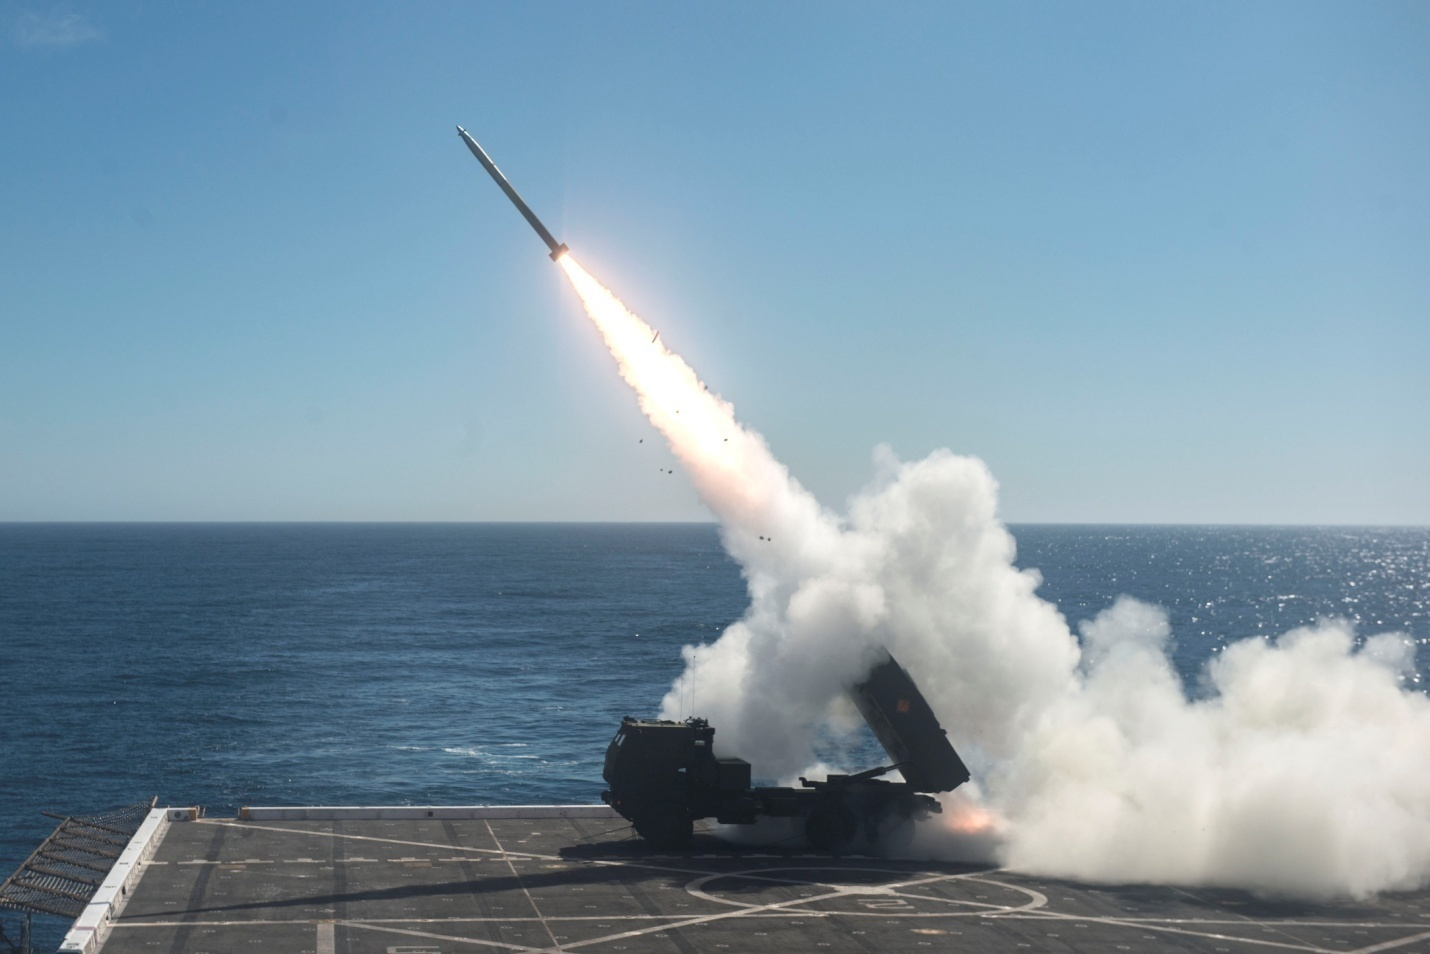 Marines look to increase range and lethality of artillery, mortars